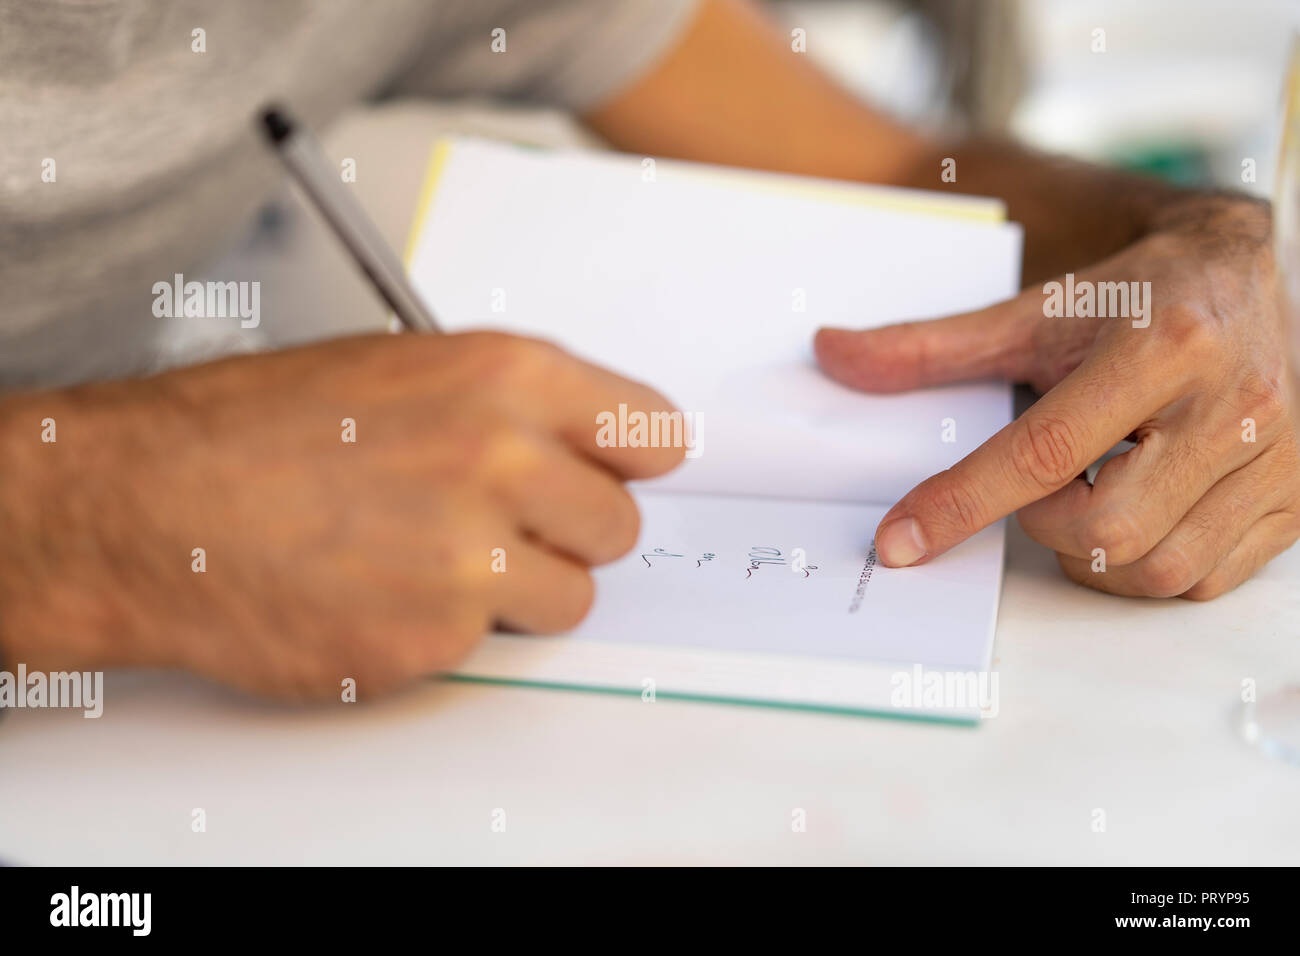 Man signing a book - Stock Image